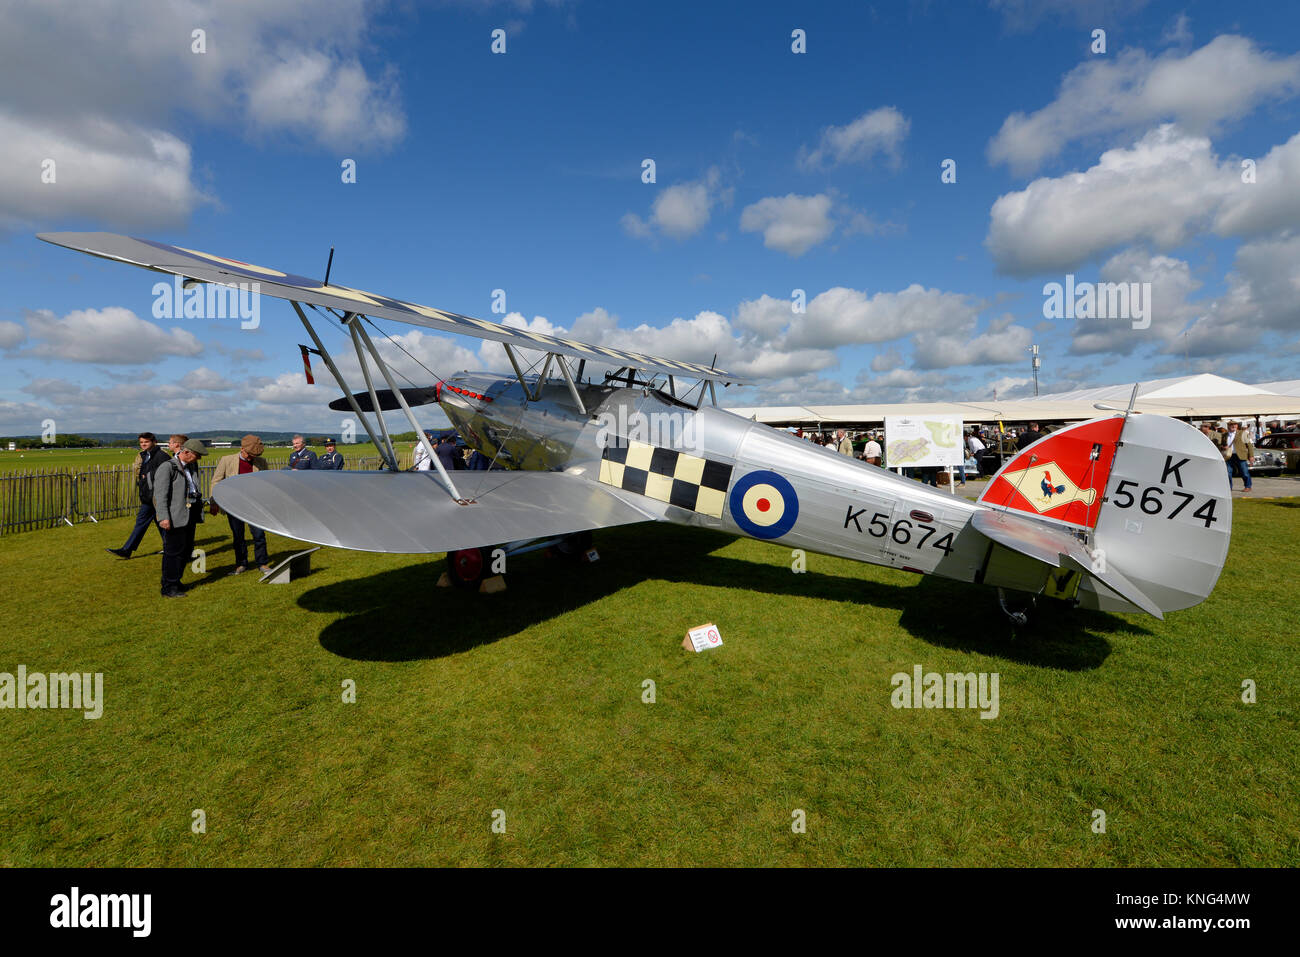 Hawker Fury K5674 biplane fighter owned by Historic Aircraft Collection in the Freddie March Spirit of Aviation Stock Photo